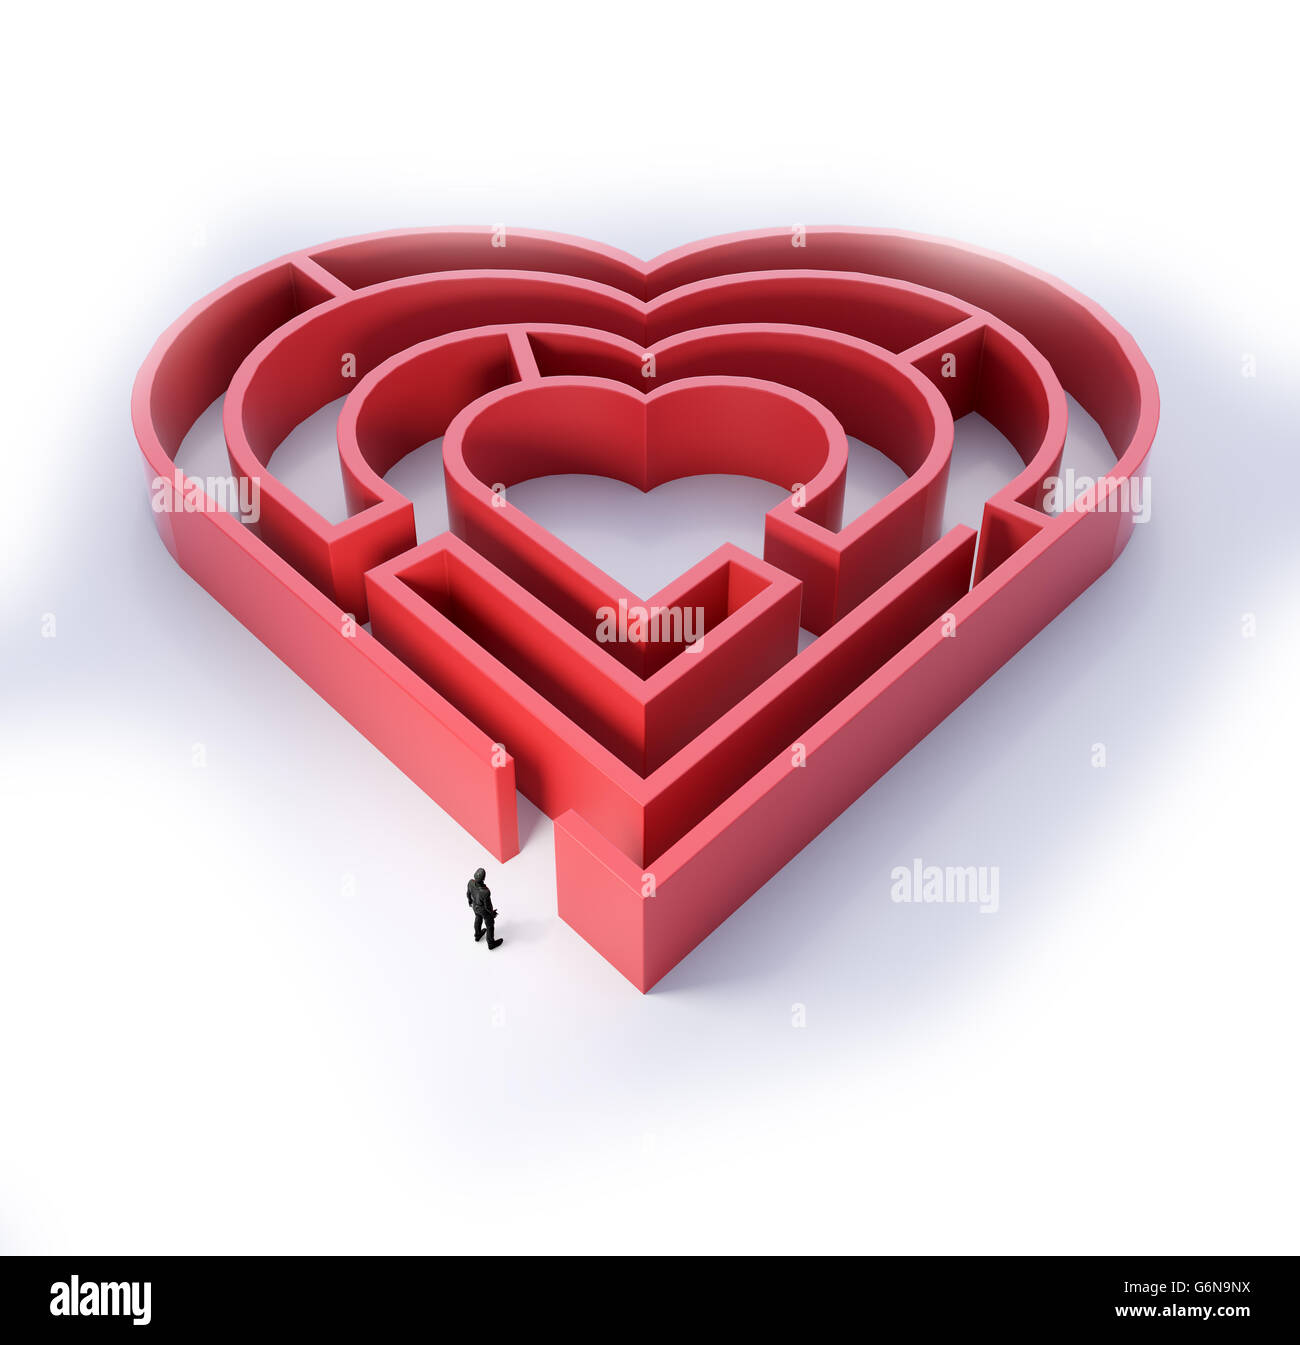 Heart shaped maze - love and relationship concept 3D illustration - Stock Image